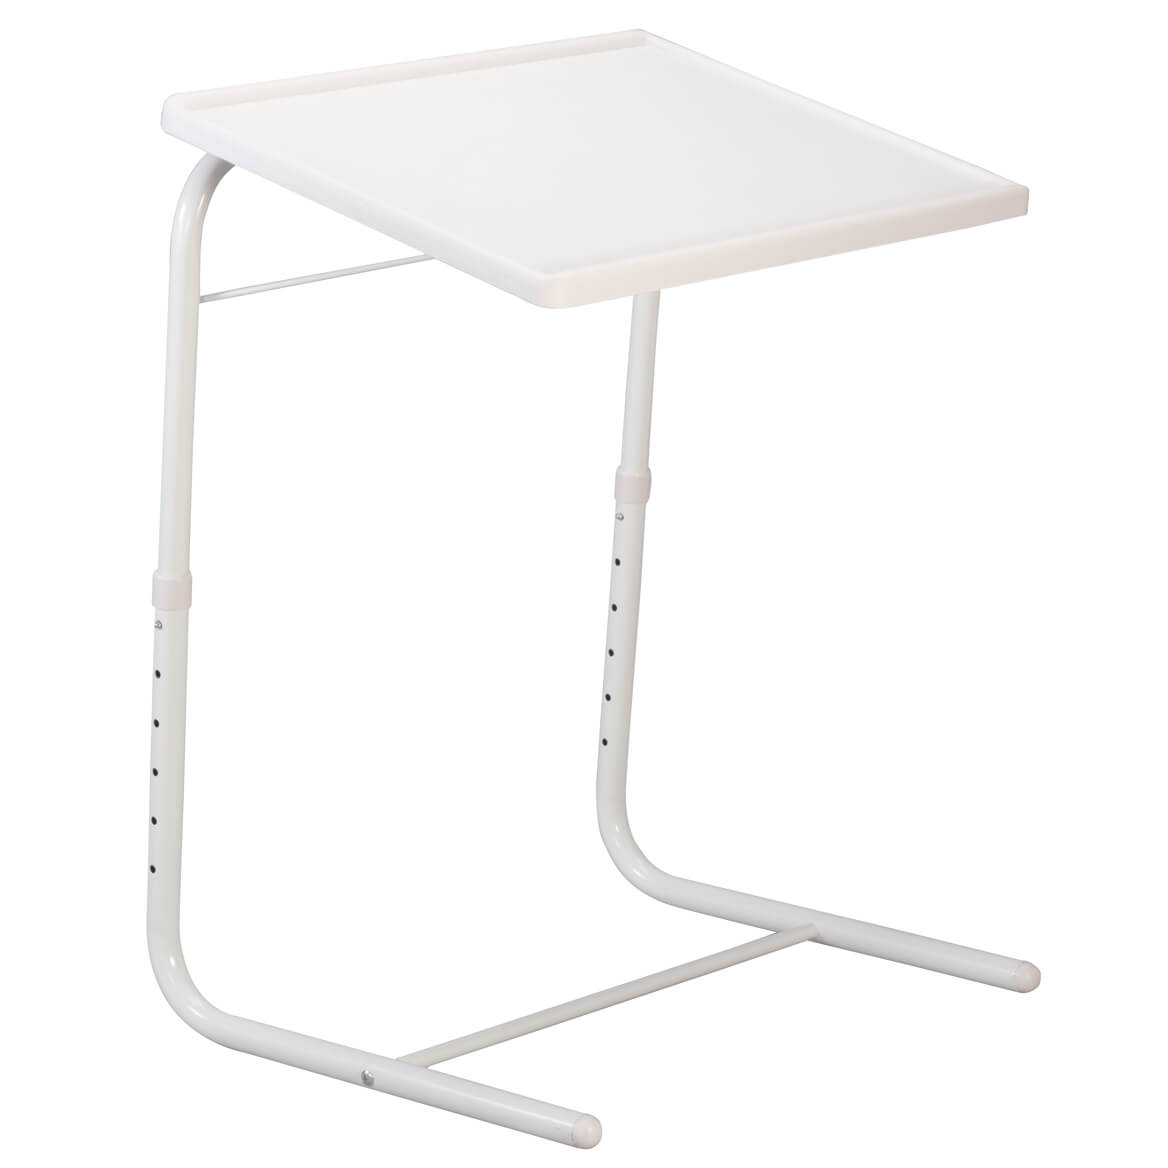 Adjustable Tray Table-347886